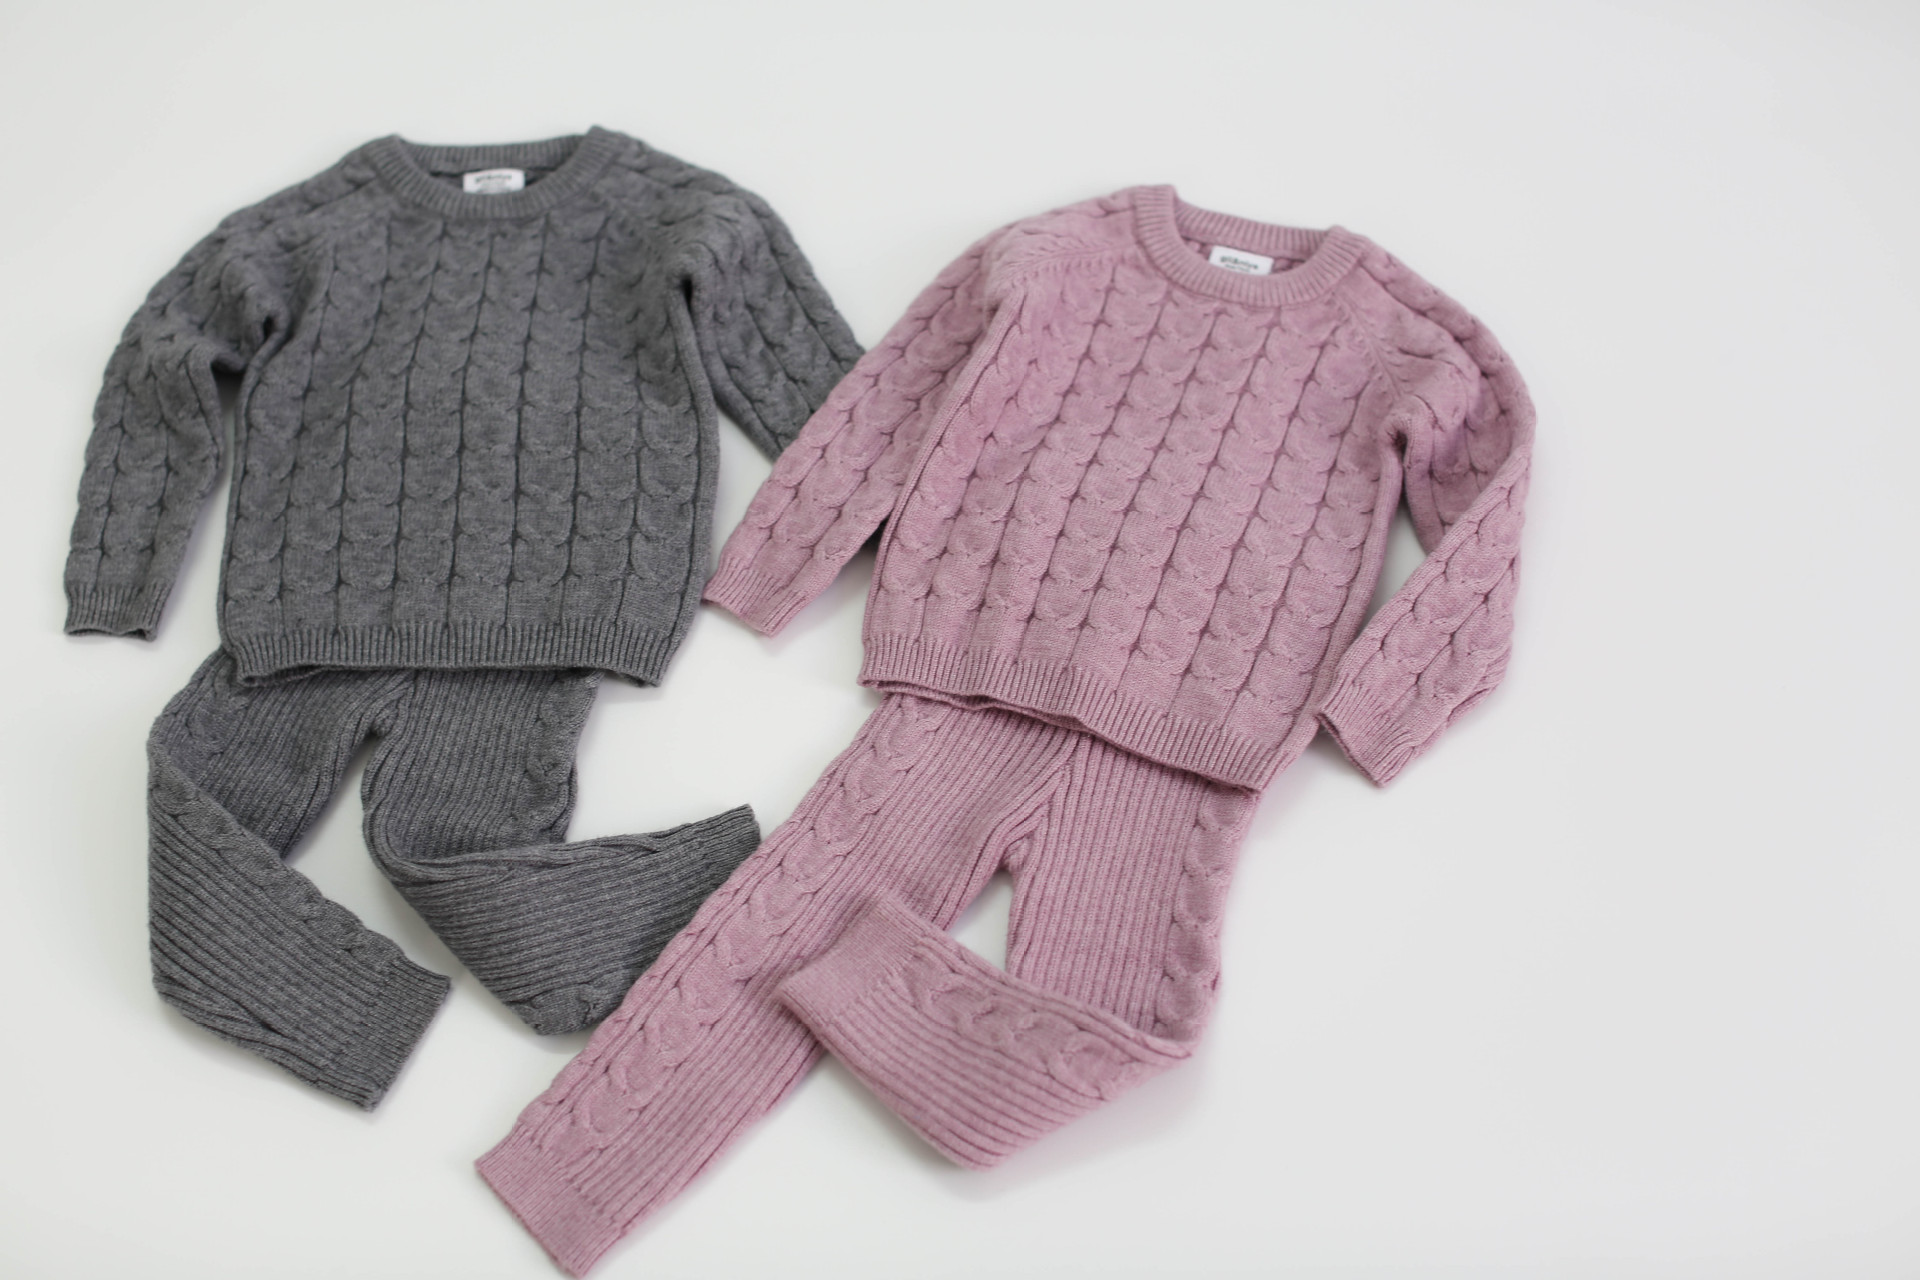 Baby Girls Boys Knit Suit toddler children Clothing Sets Winter knitting Pullover Sweater+Pants Infant kids Tracksuits pink gray 2